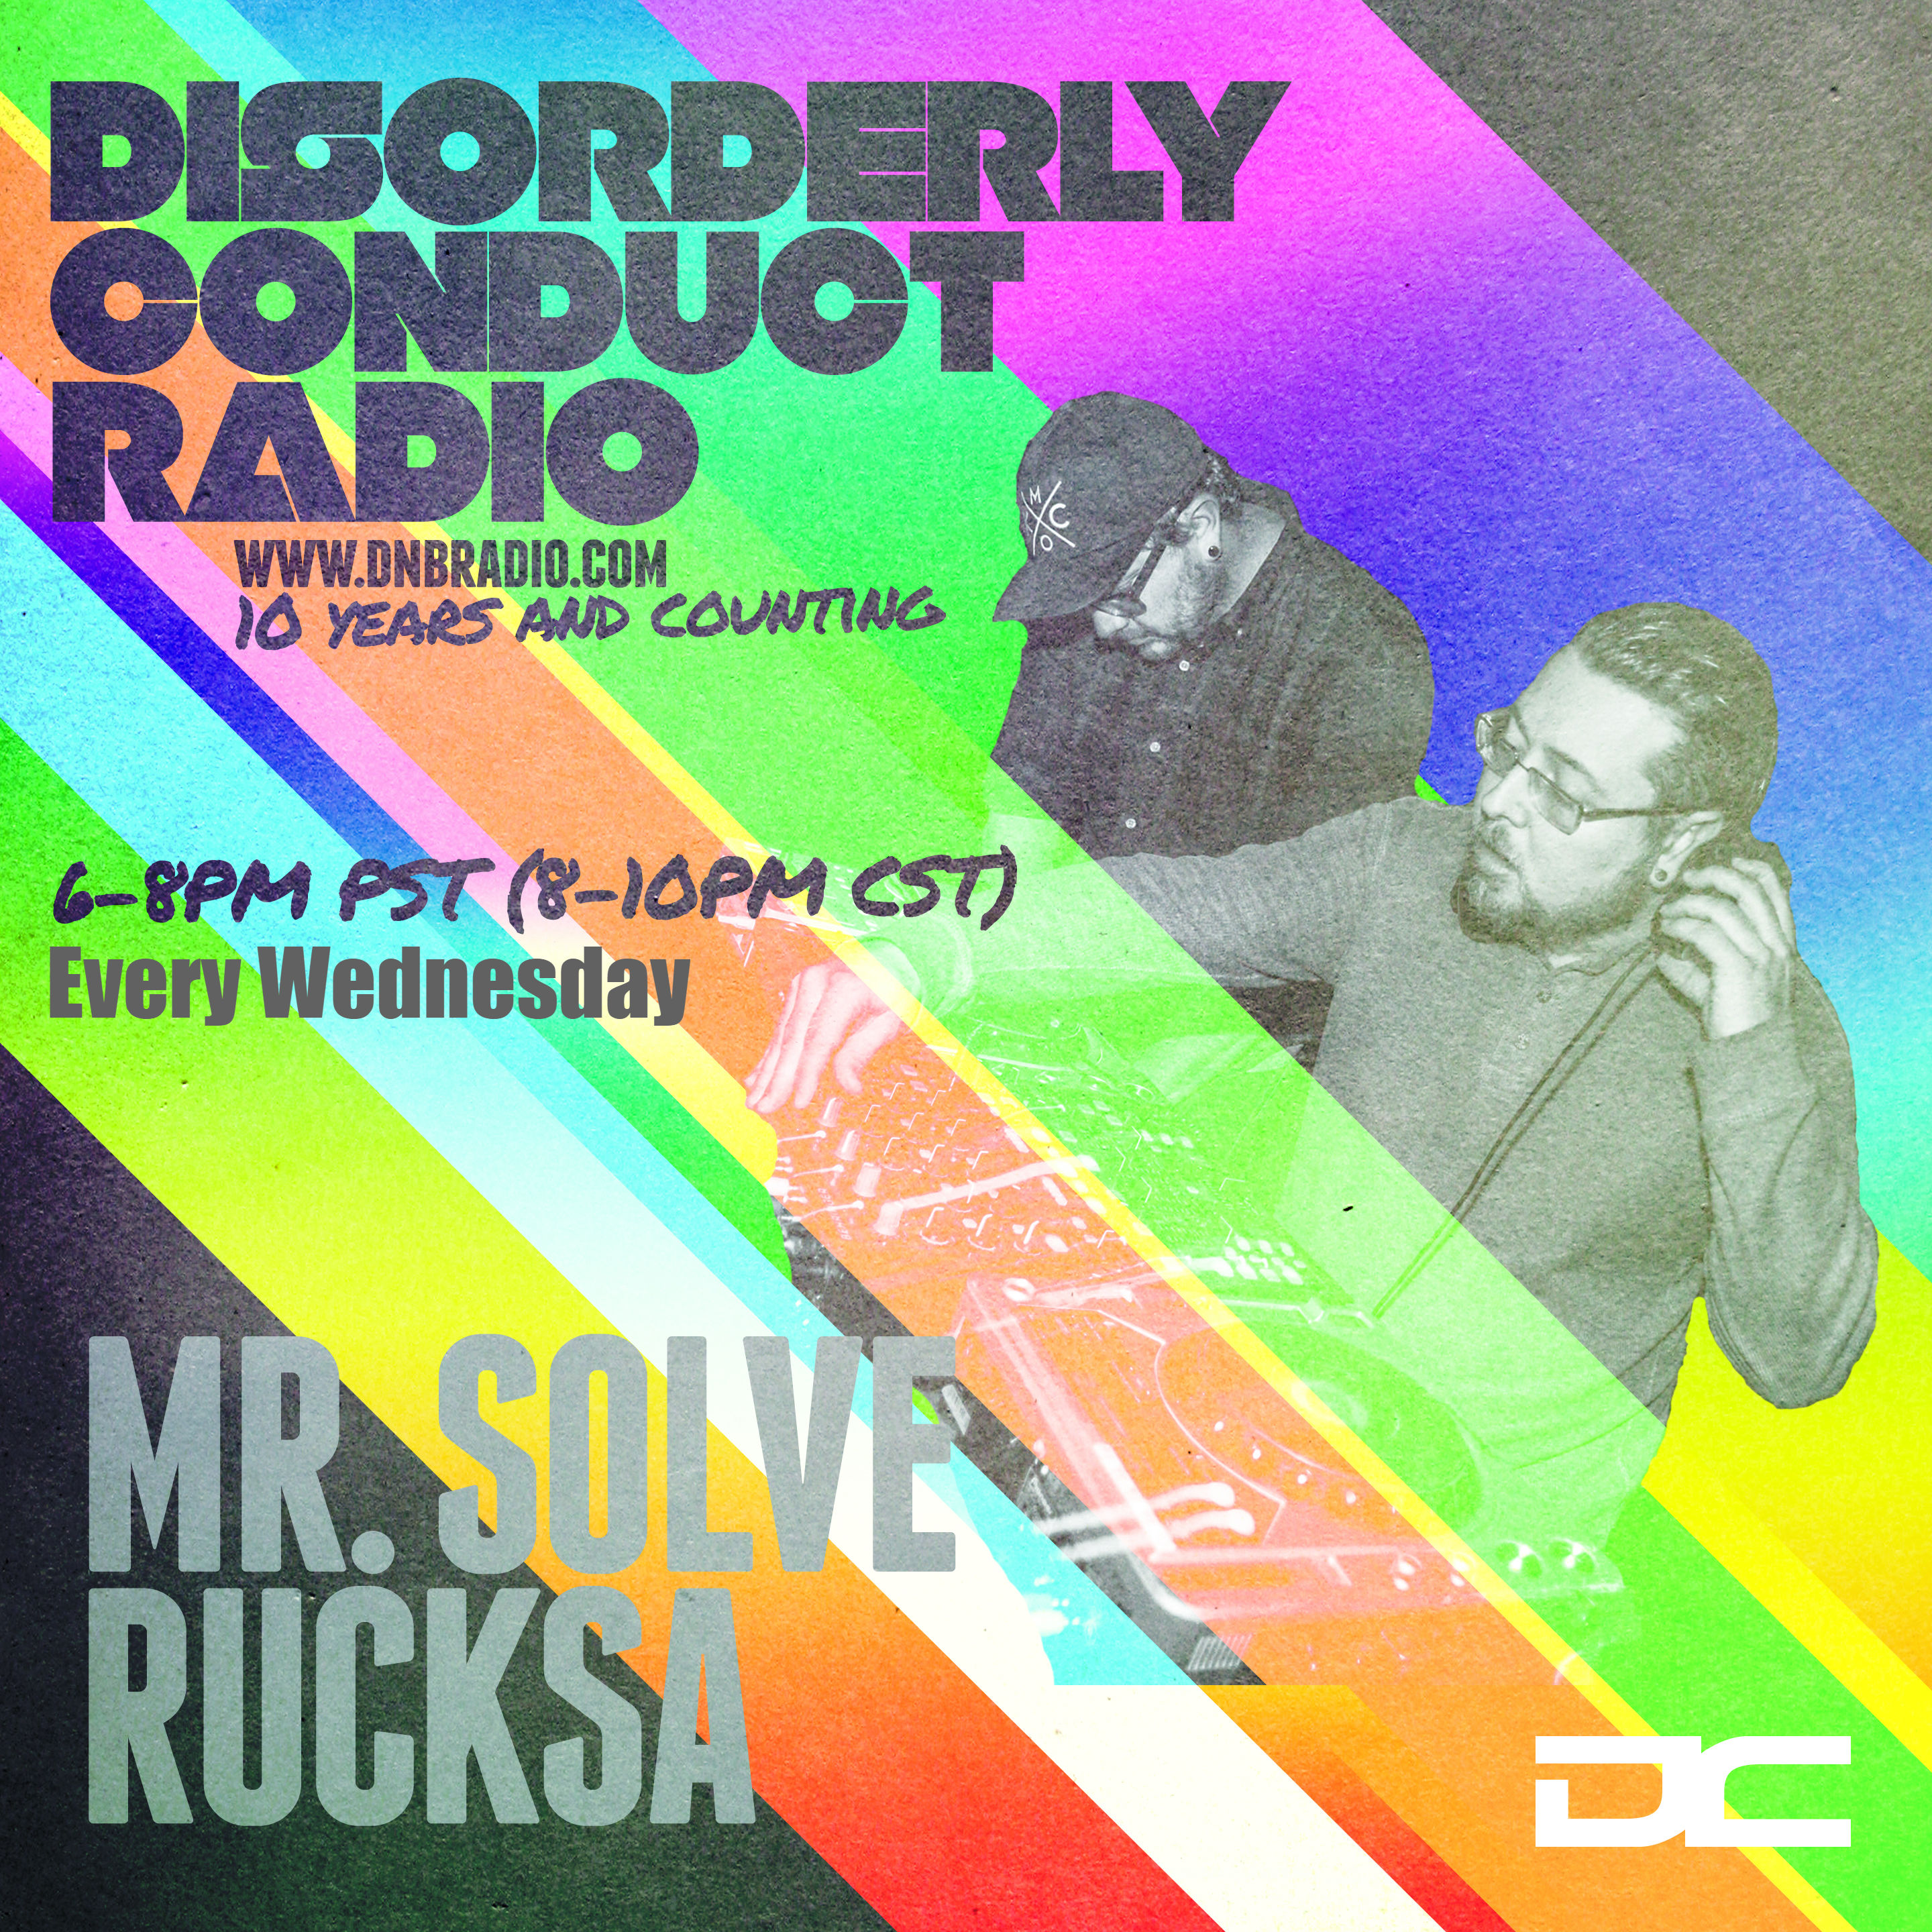 Mr. Solve and Rucksa – Disorderly Conduct Radio 072518 V2